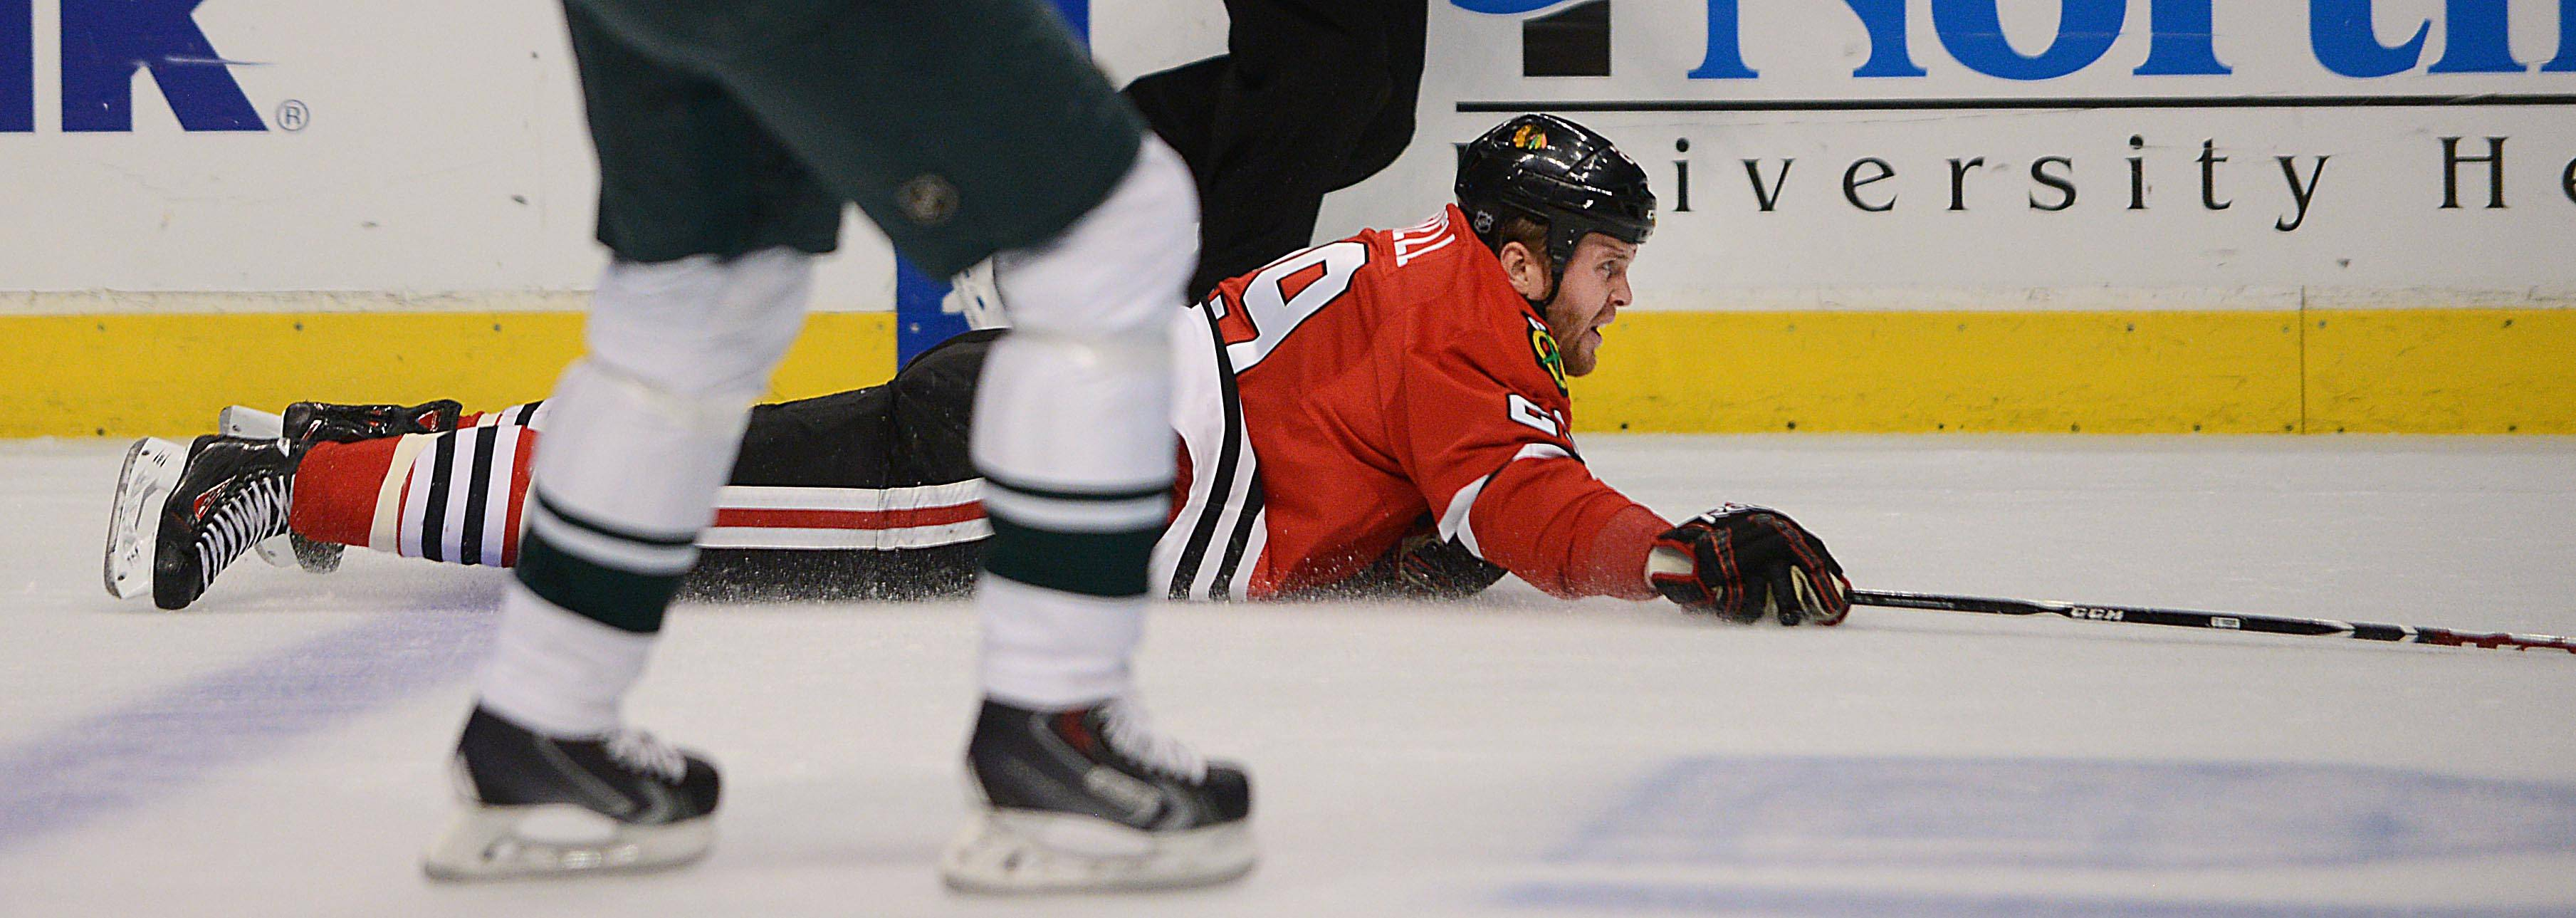 Chicago Blackhawks left wing Bryan Bickell hits the ice against the Minnesota Wild.